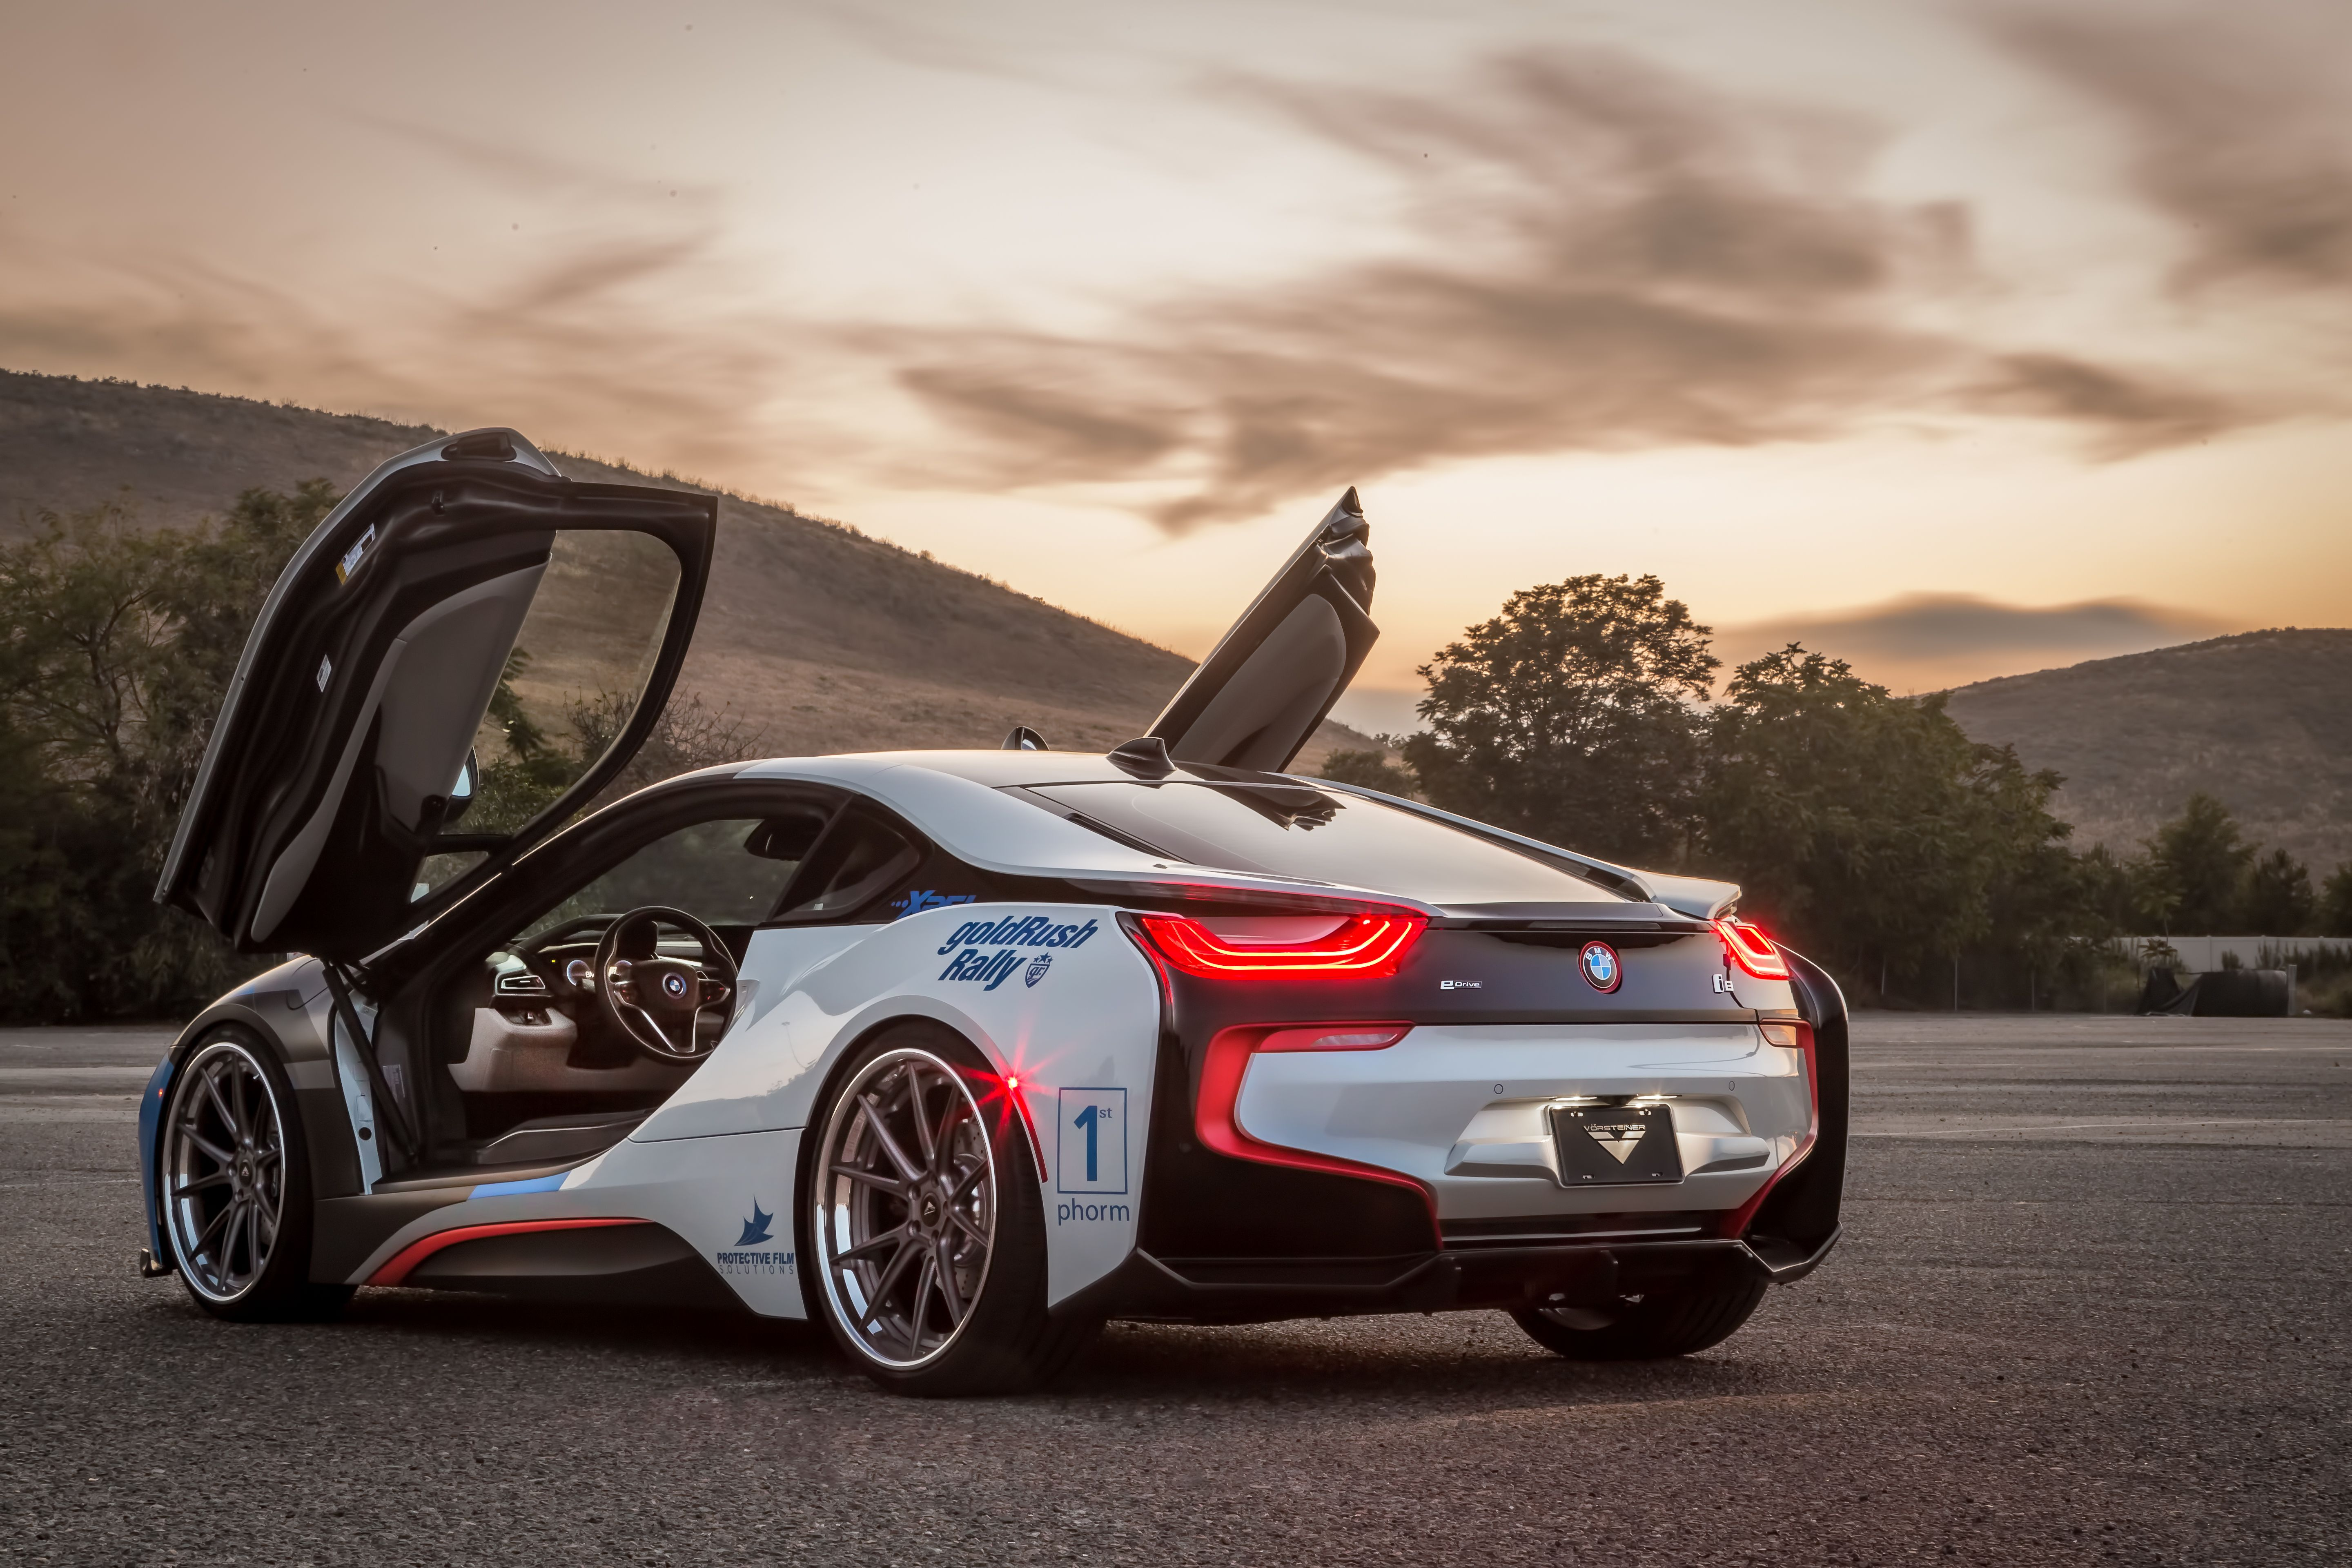 Bmw I8 Roadster Wallpapers Wallpaper Cave